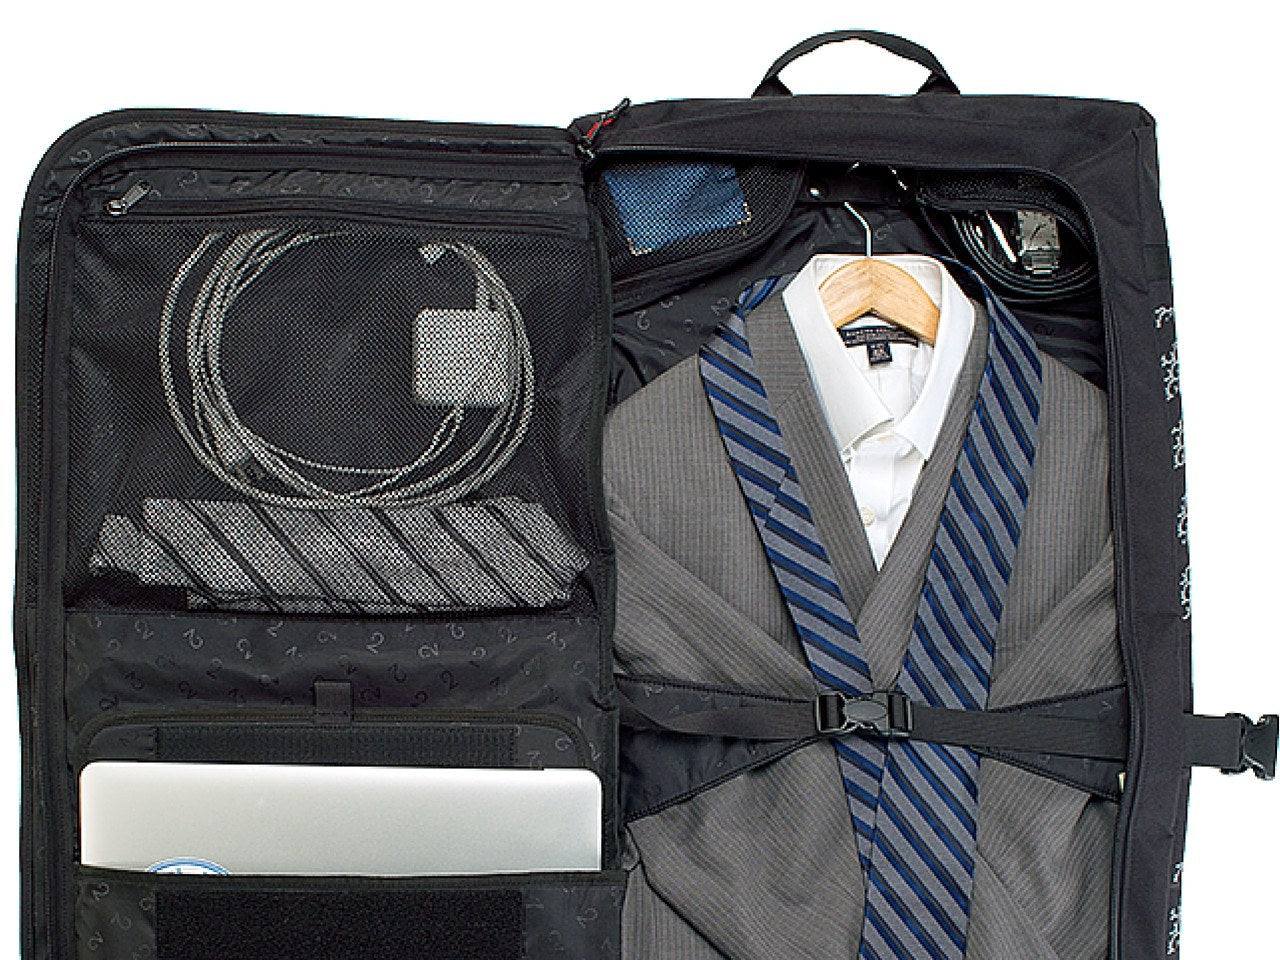 Classic 2.0 Garment Pannier - Black Suit Bag Open Showing Suit Packed - Two Wheel Gear